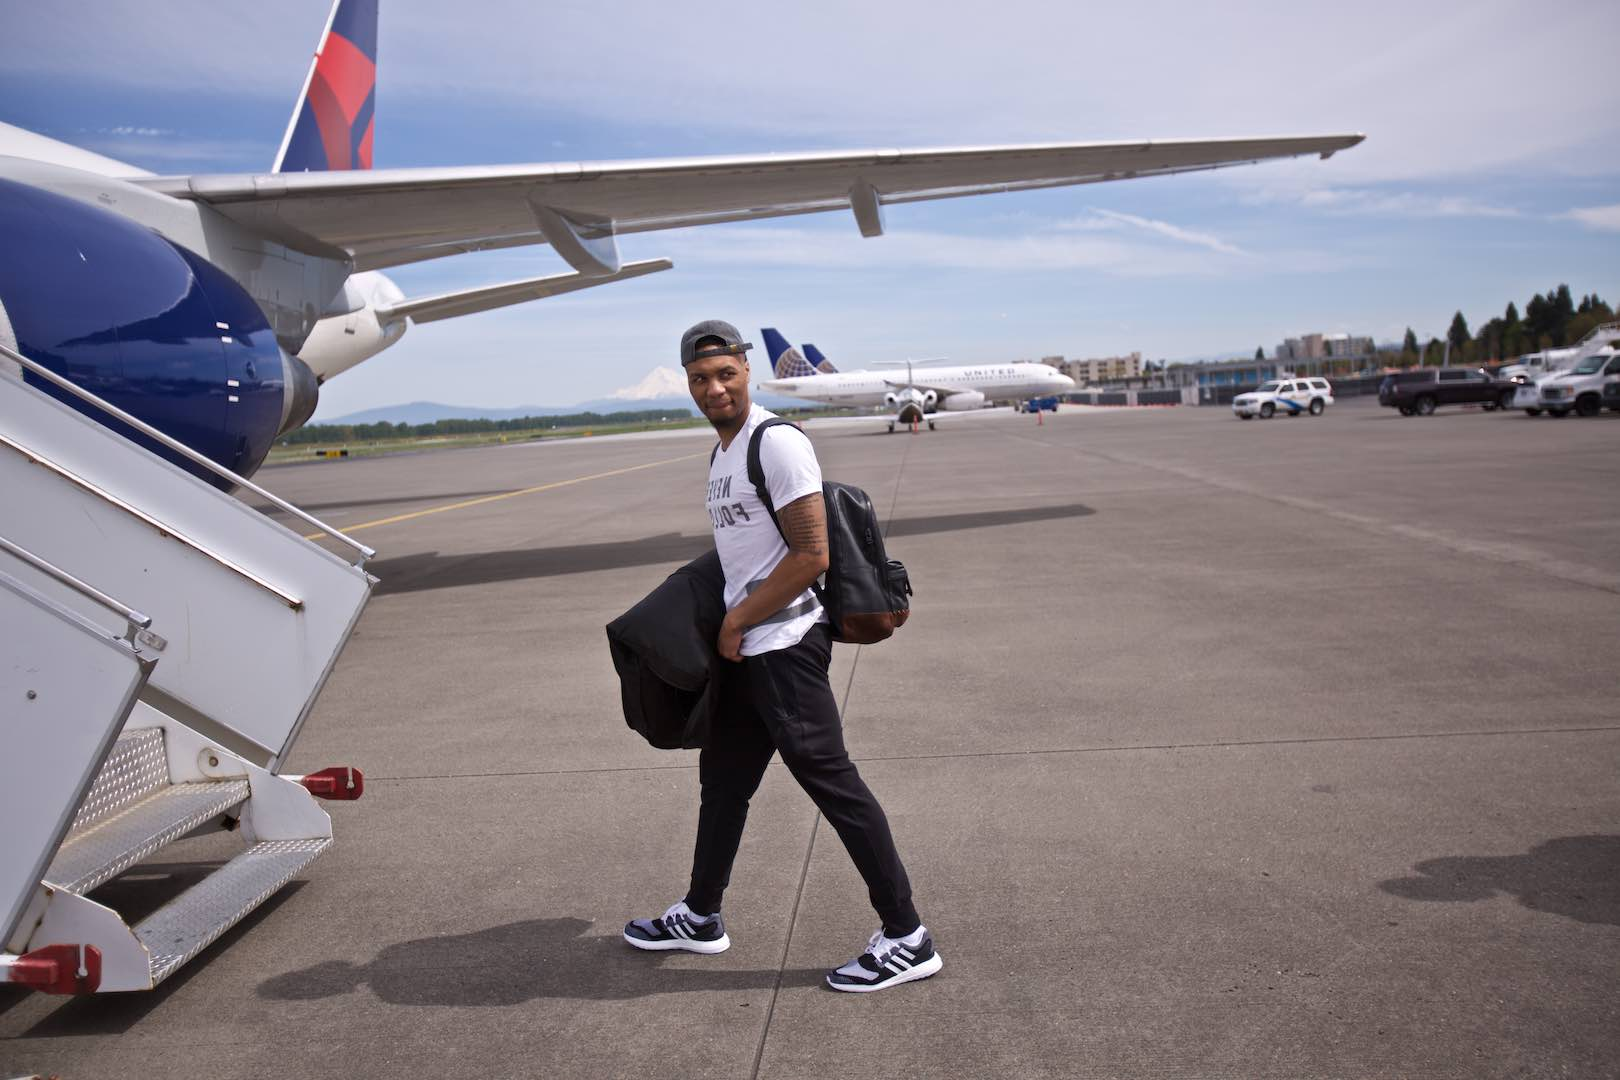 Photos team boards plane for games 1 and 2 in los angeles players coaches and staff load up for a first round matchup with the clippers voltagebd Images